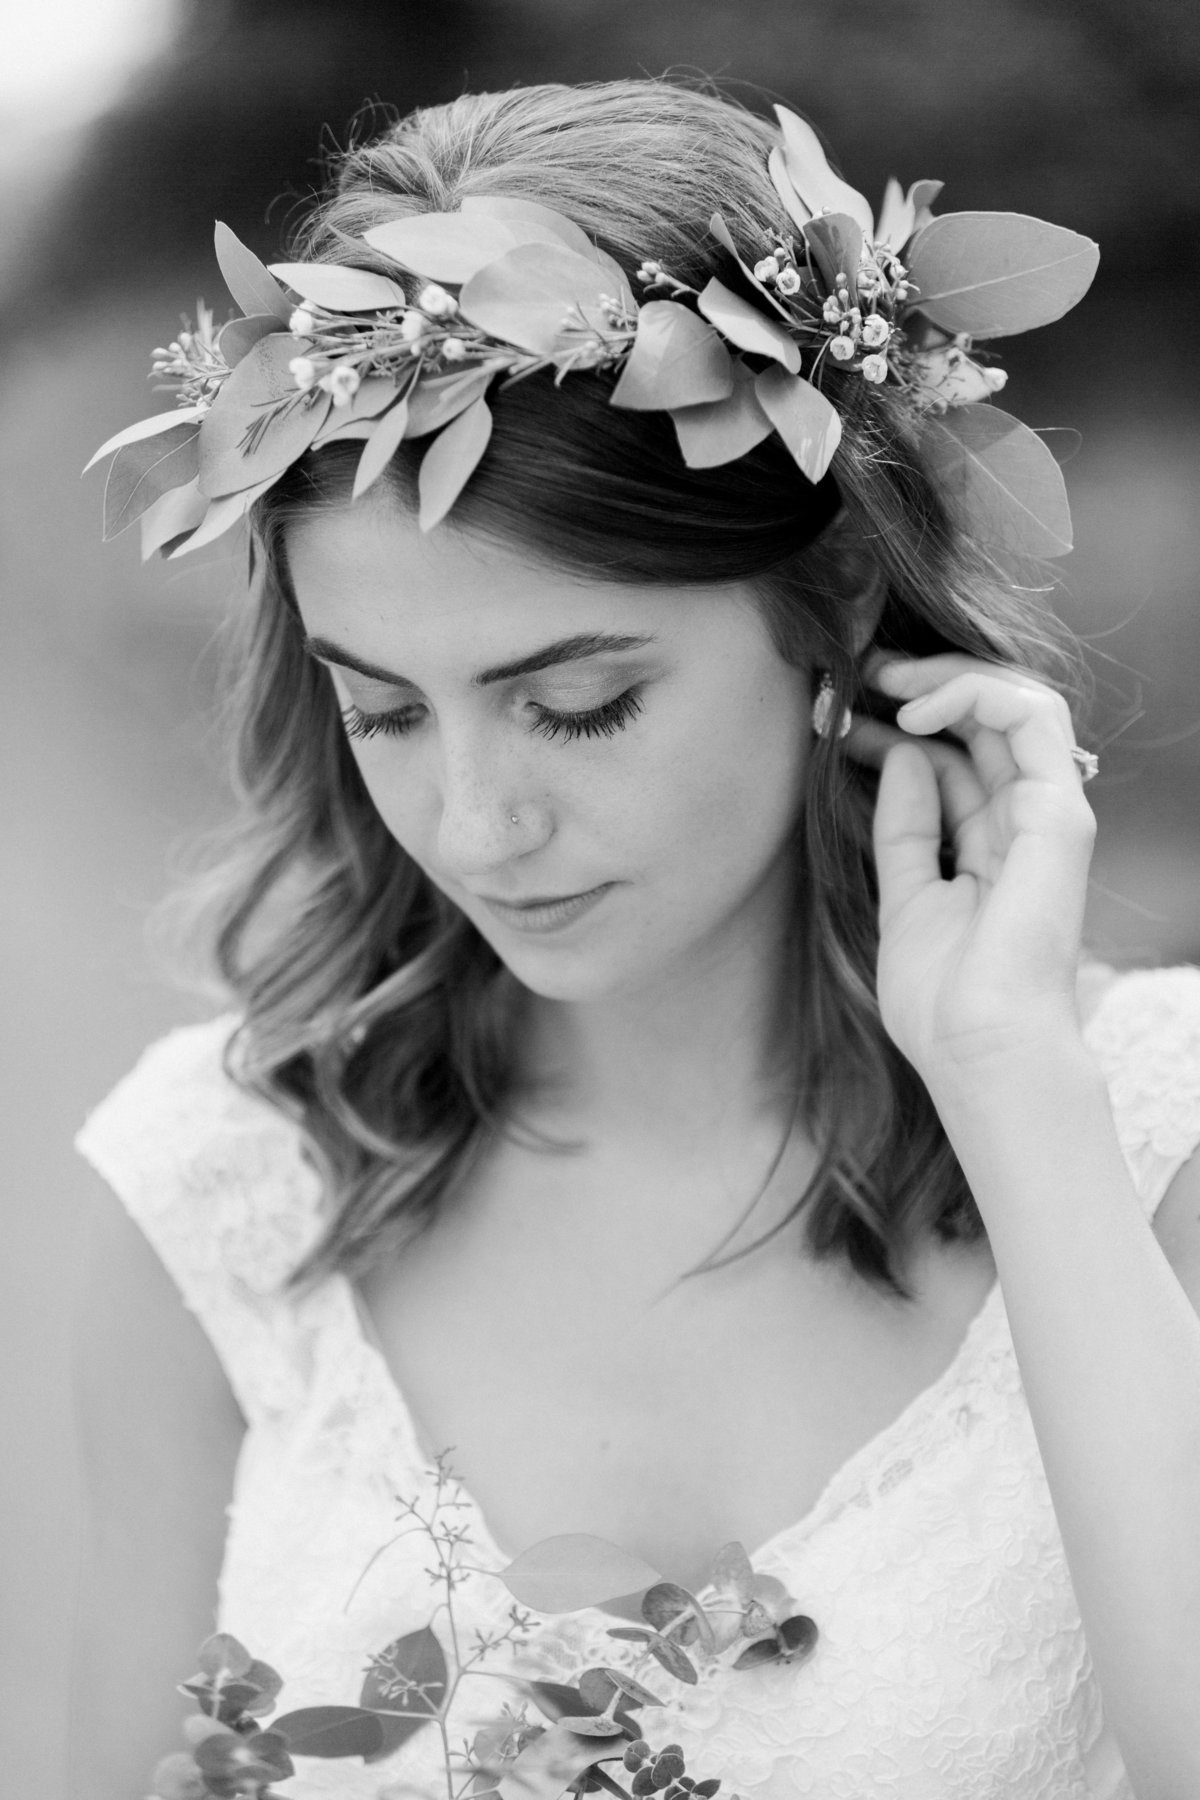 Charley Creek Gardens Wedding Bridal Portrait Photo